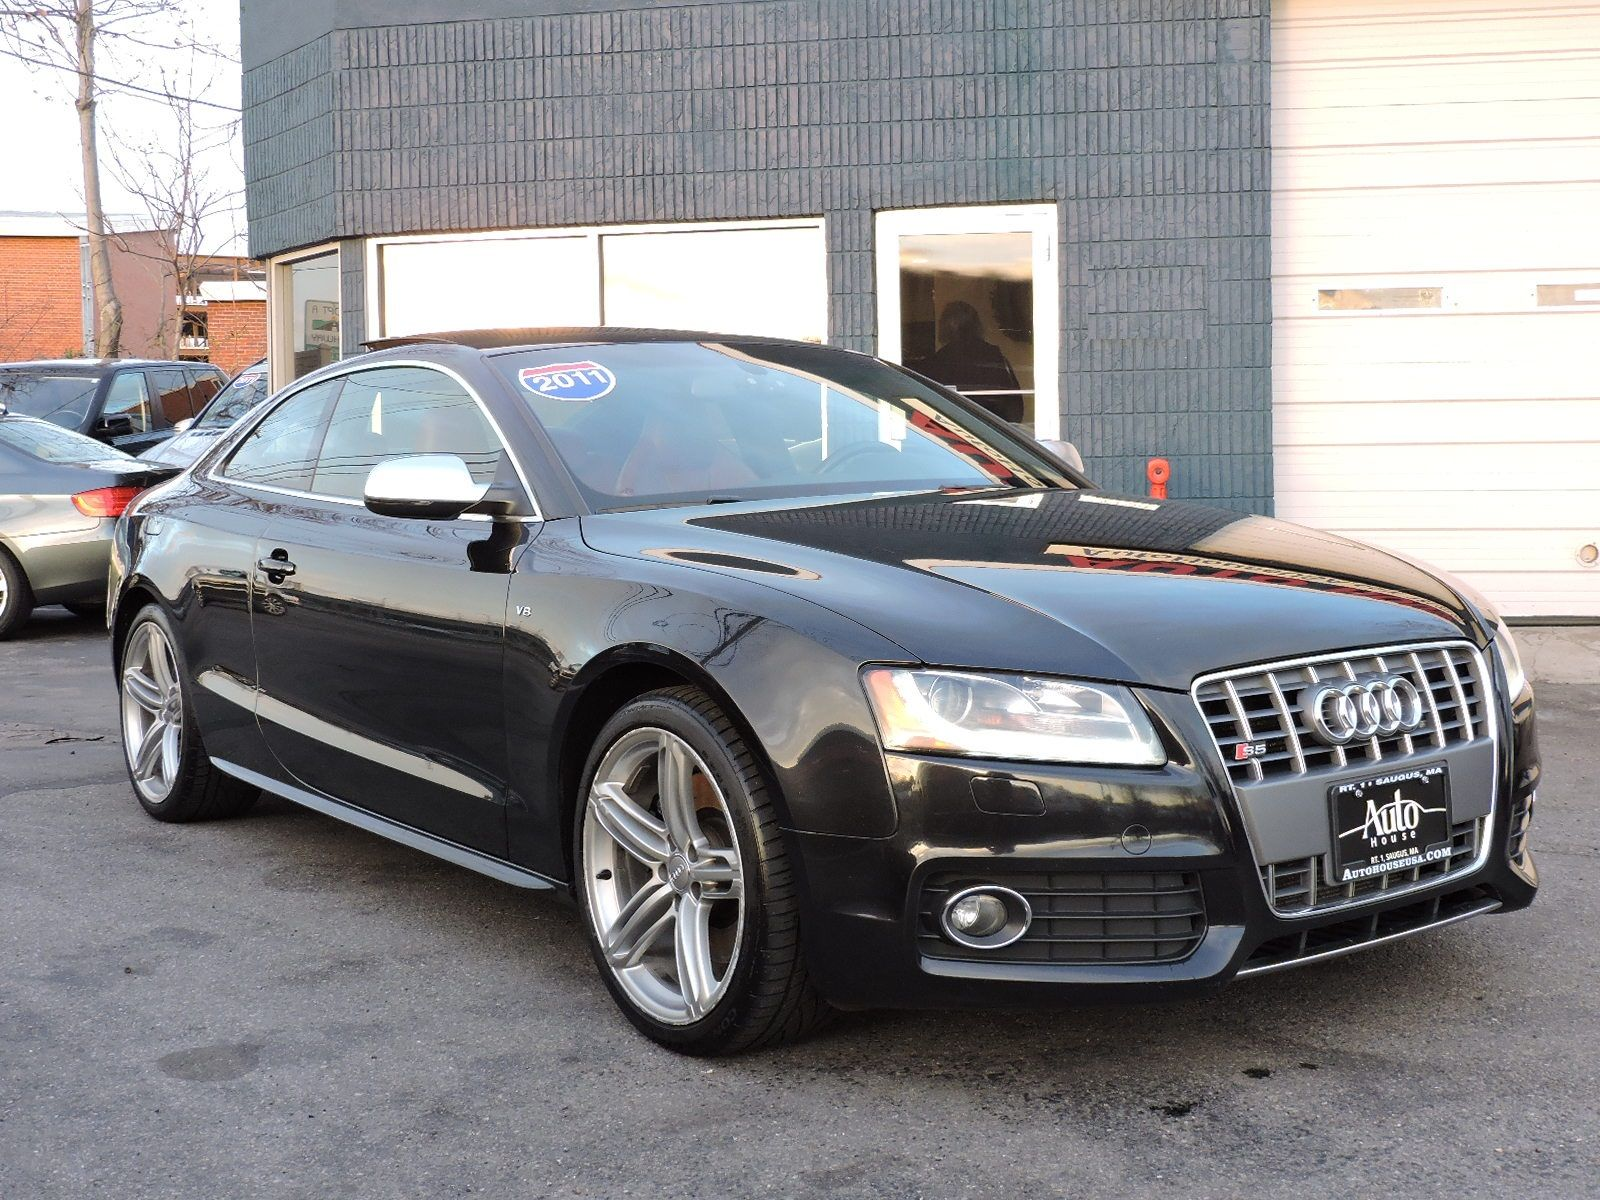 2011 Audi S5 6 Speed Coupe Premium Plus AWD